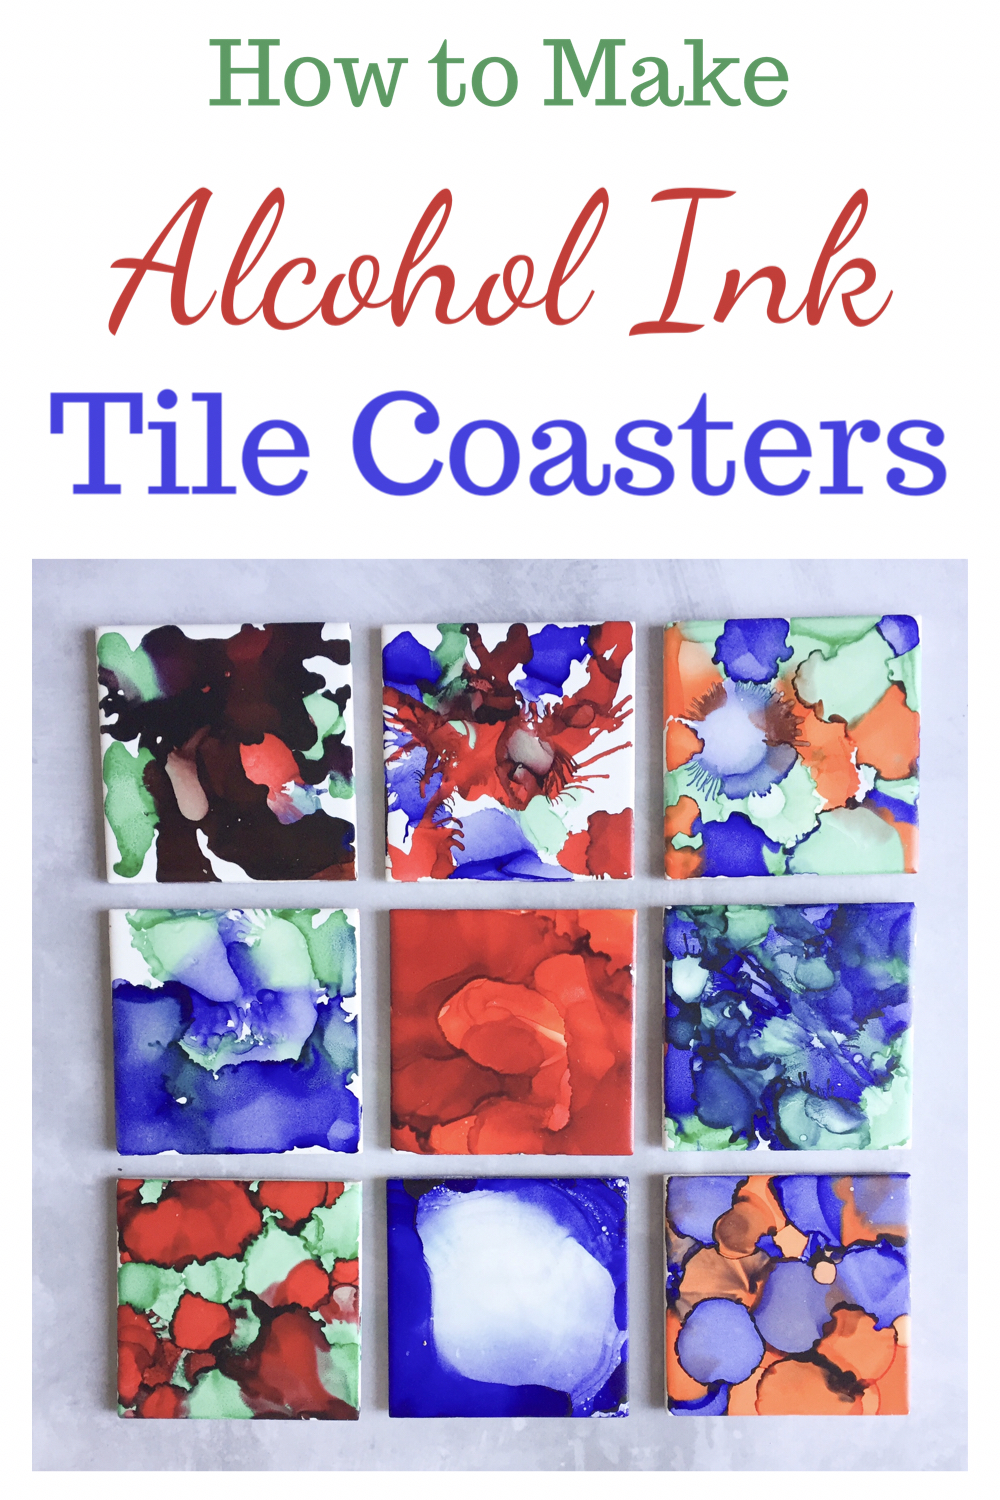 How to make alcohol ink tile coasters